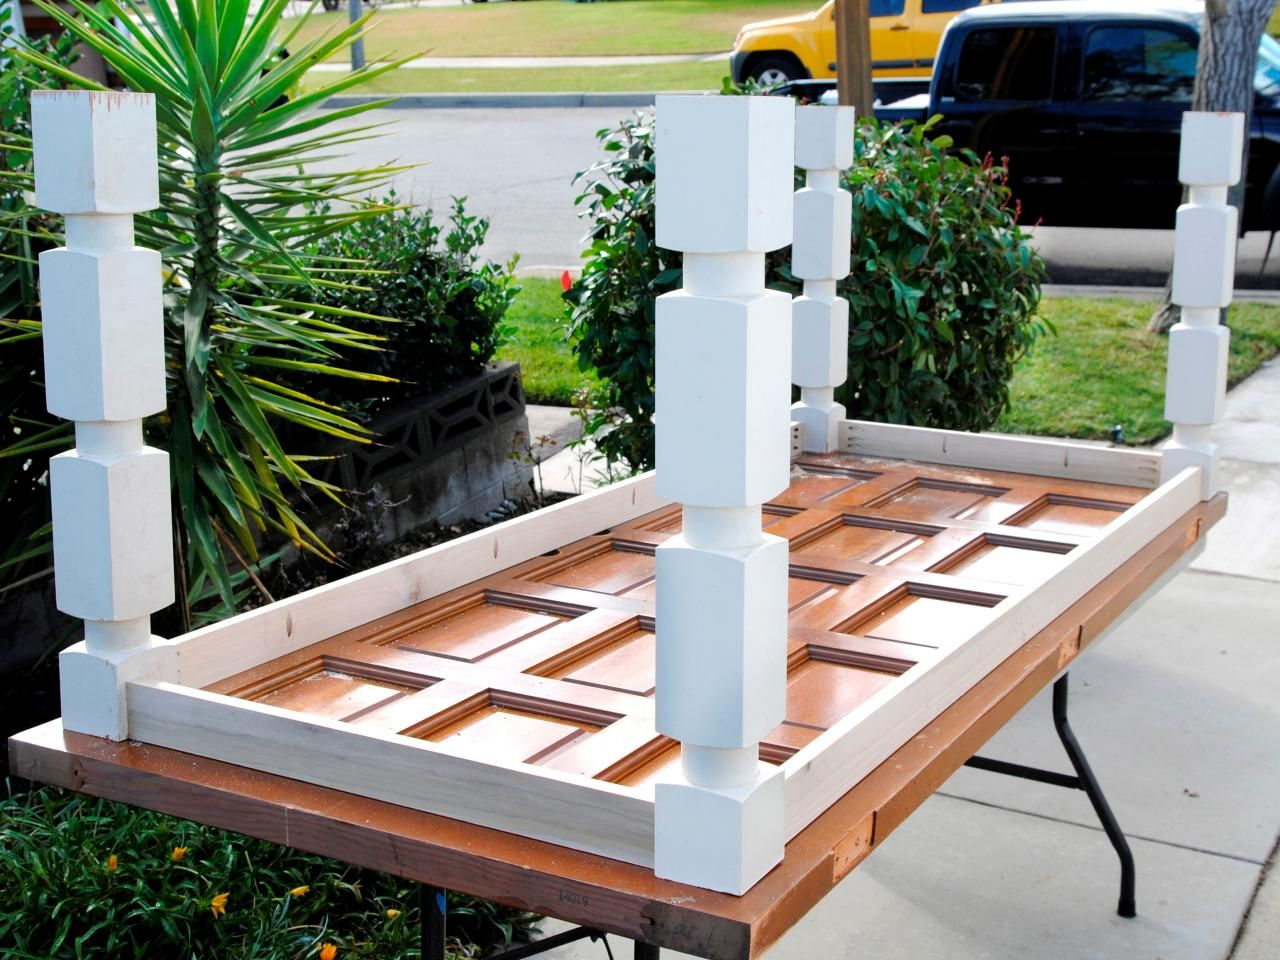 Get Step By Instructions For Building A Craftsman Dining Table From Reclaimed Door